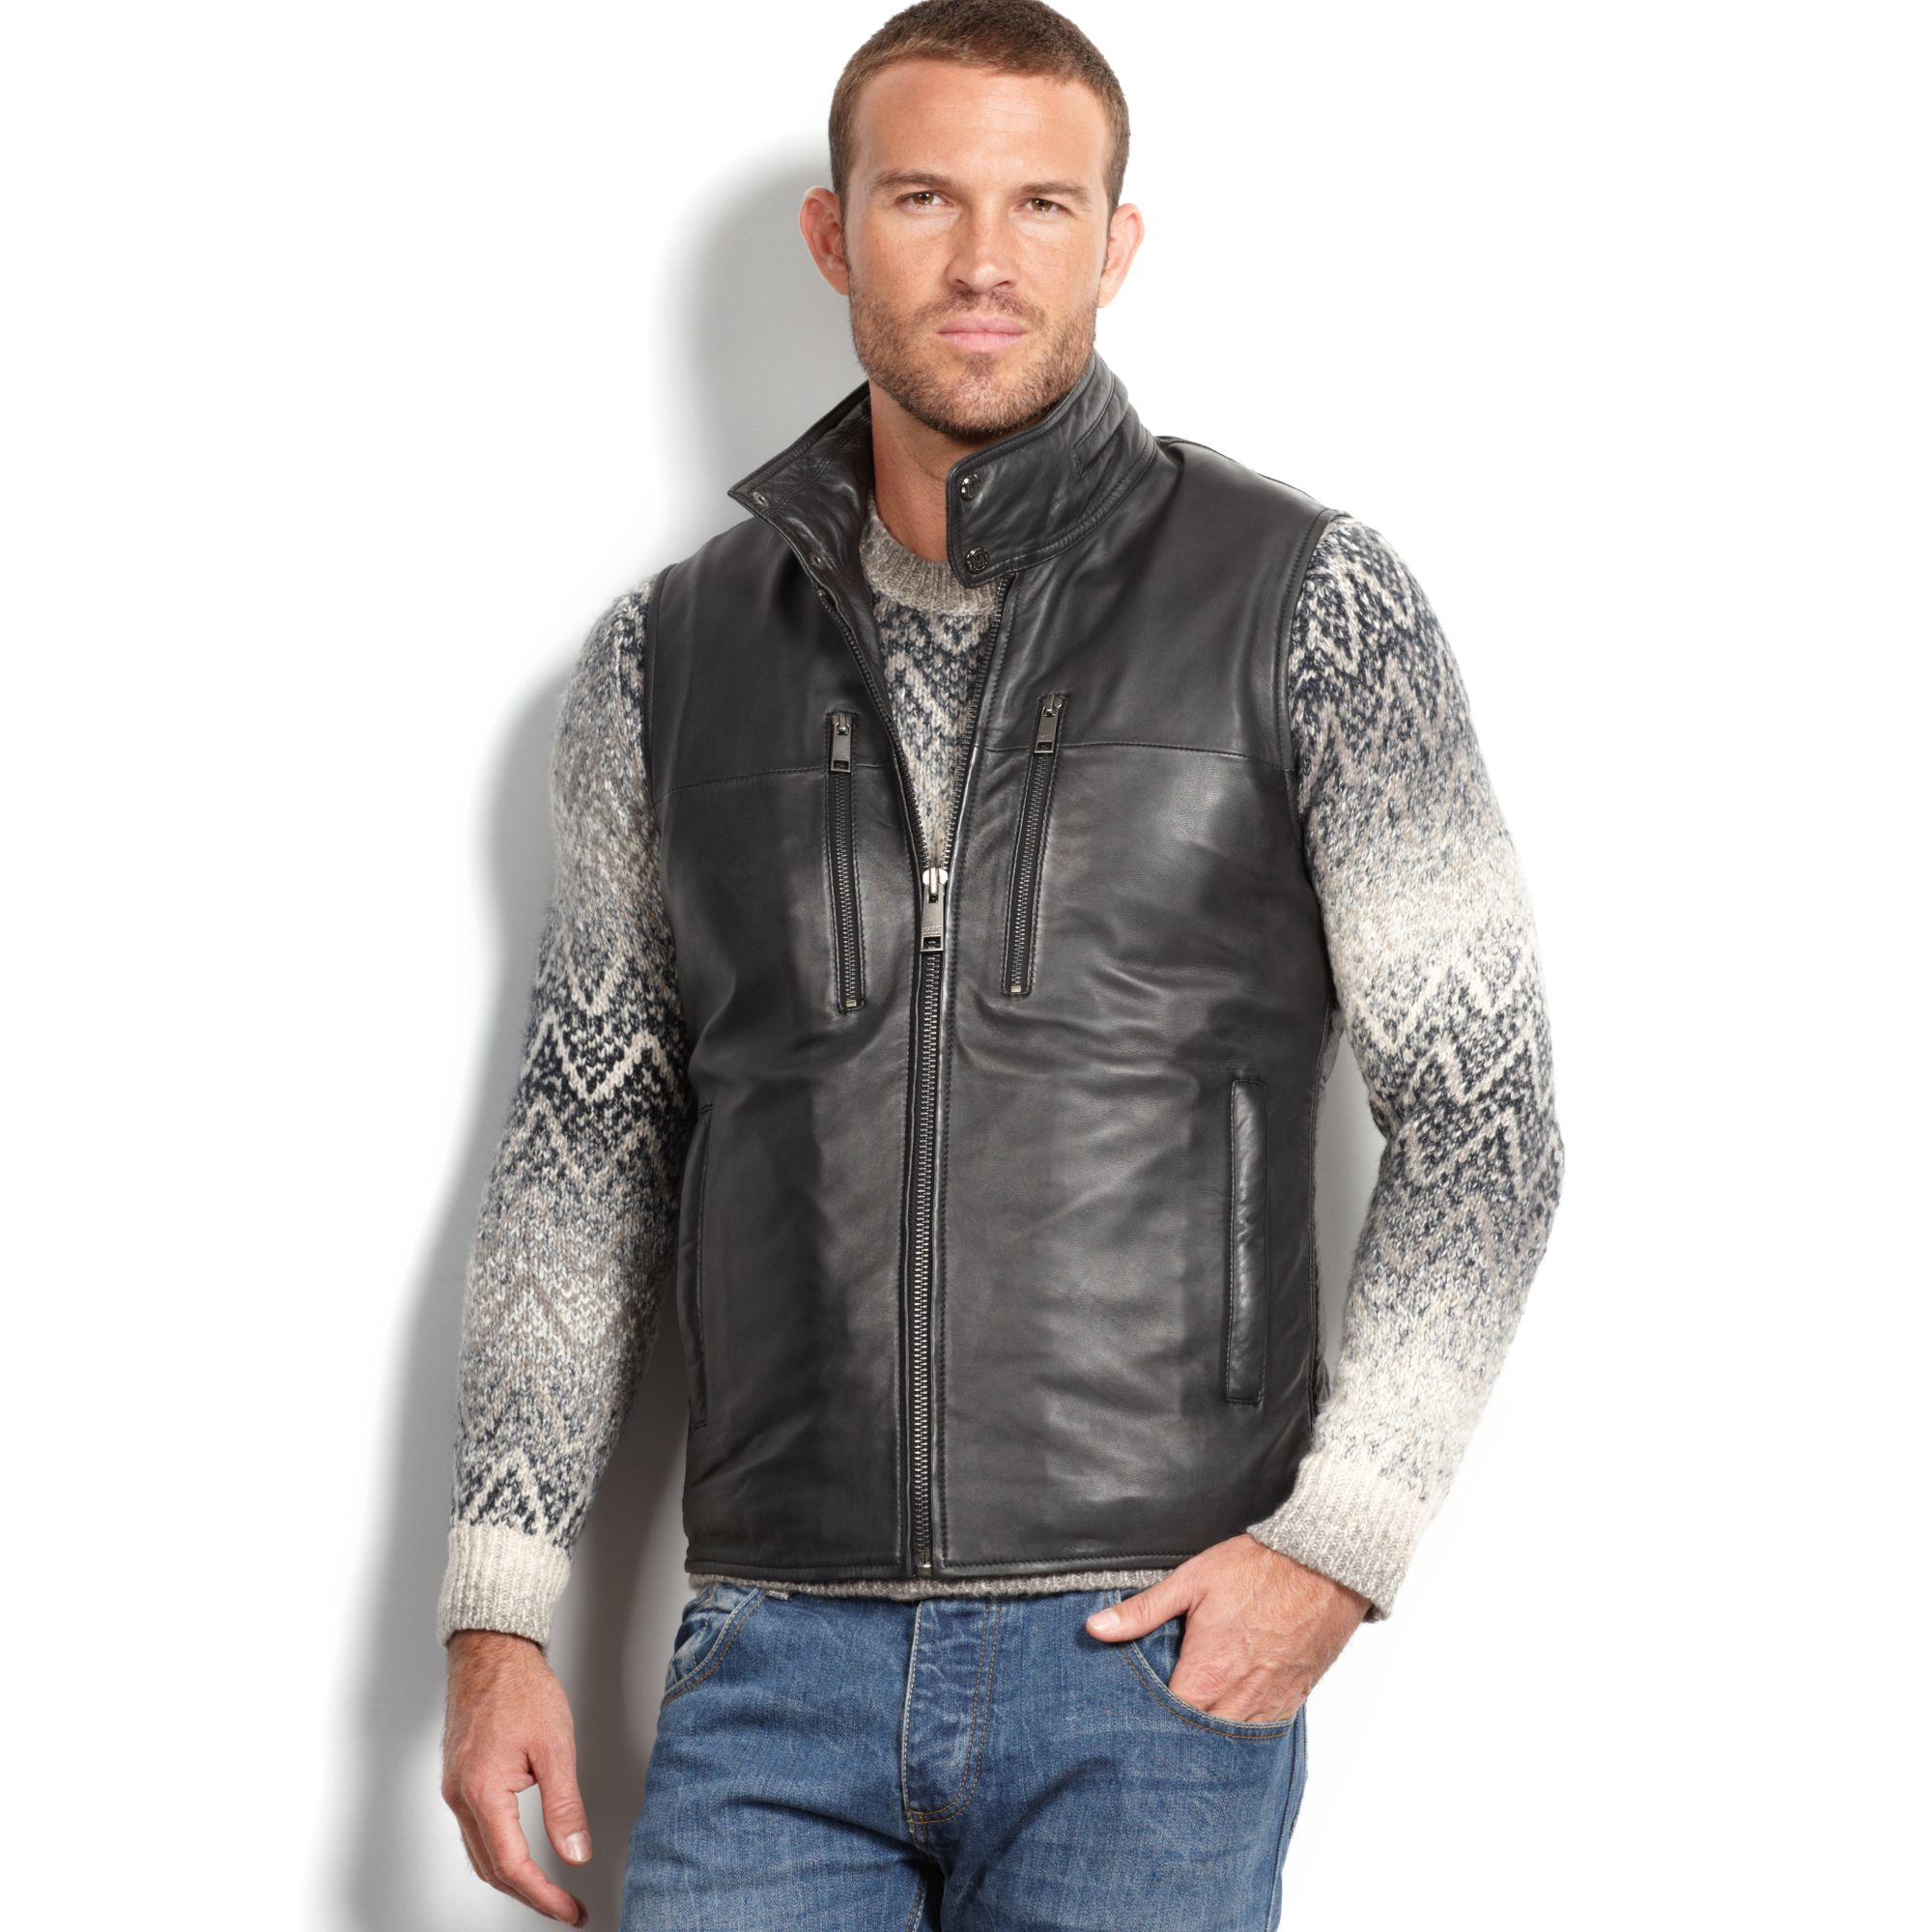 Marc New York Liberty Leather Quilted Vest In Black For Men Lyst